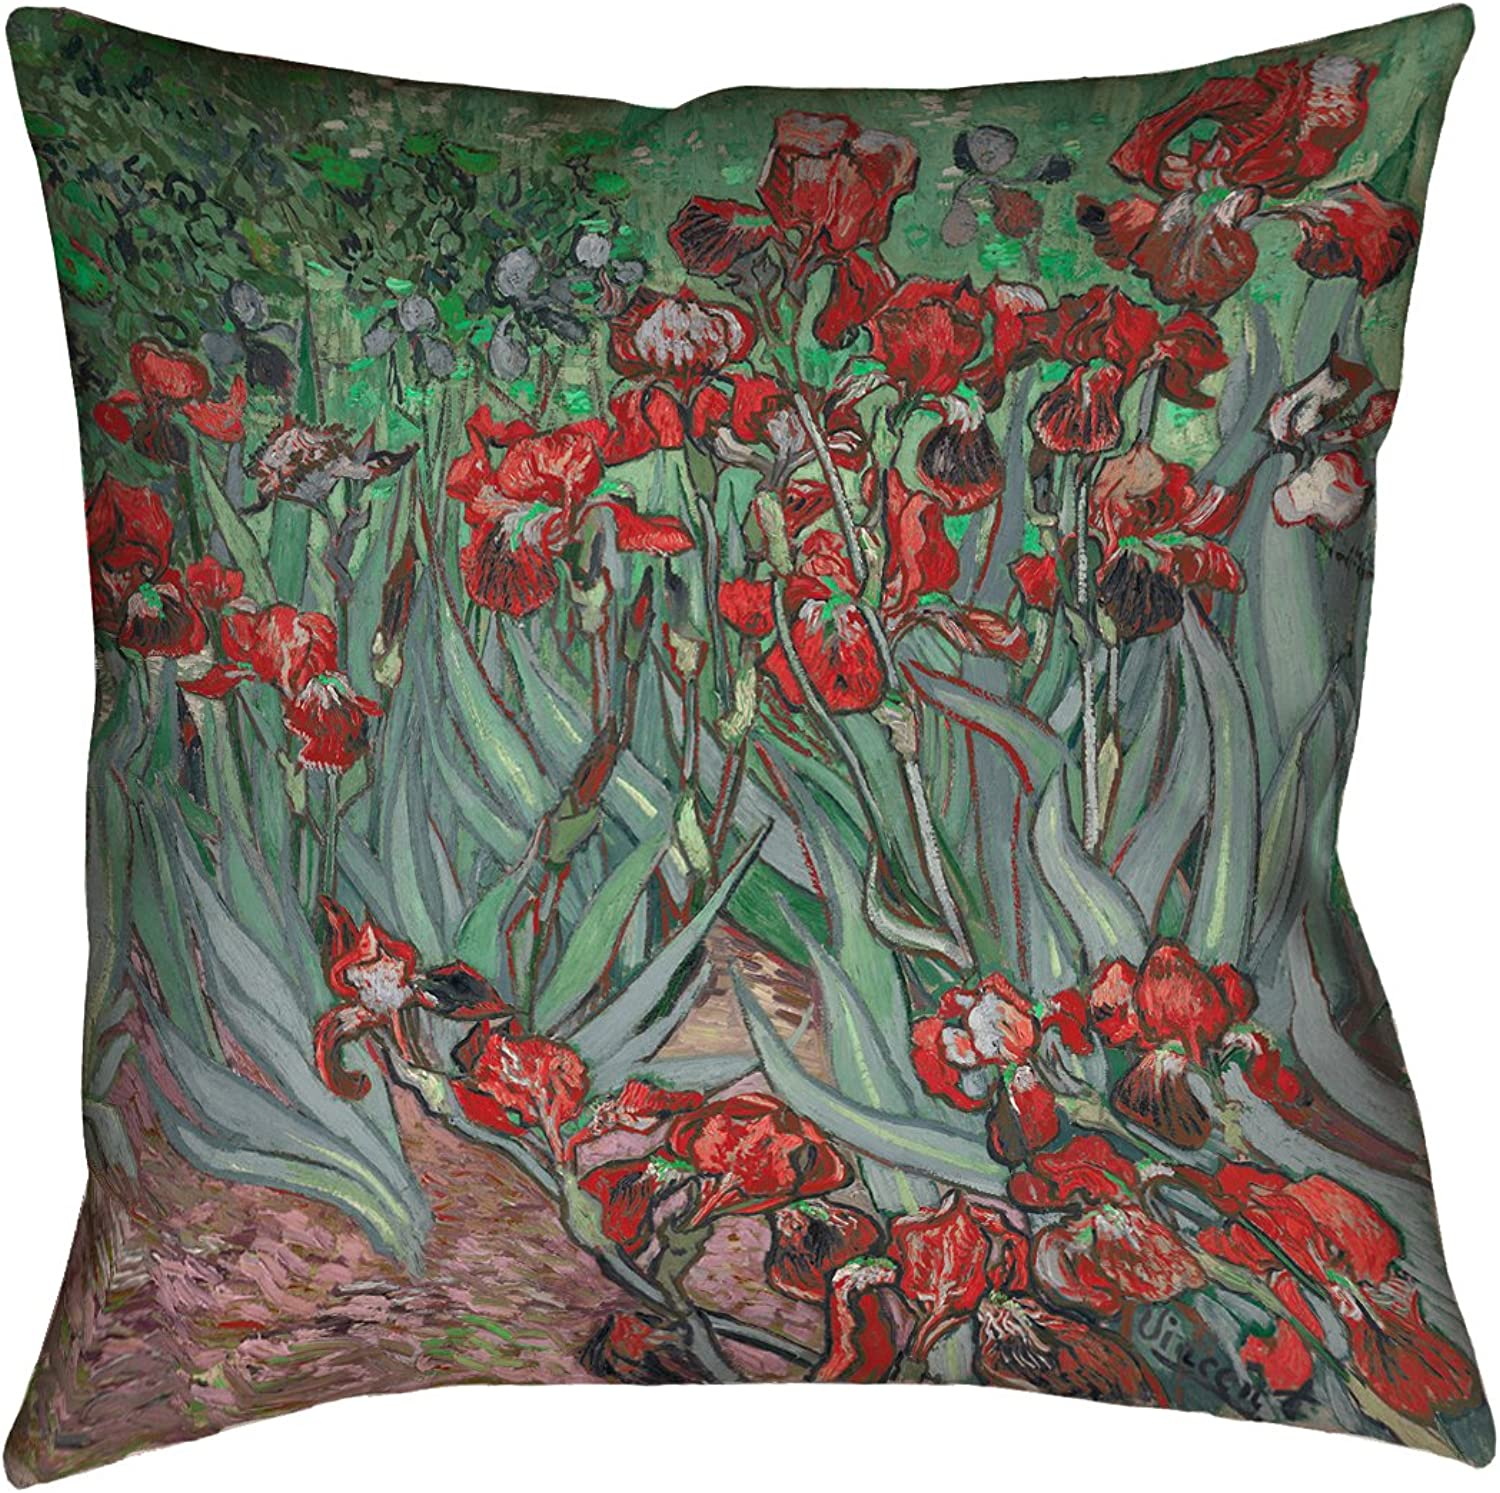 ArtVerse Vincent Van Gogh 14  x 14  Cotton Twill Double Sided Print with Concealed Zipper & Insert Irises in Red Pillow